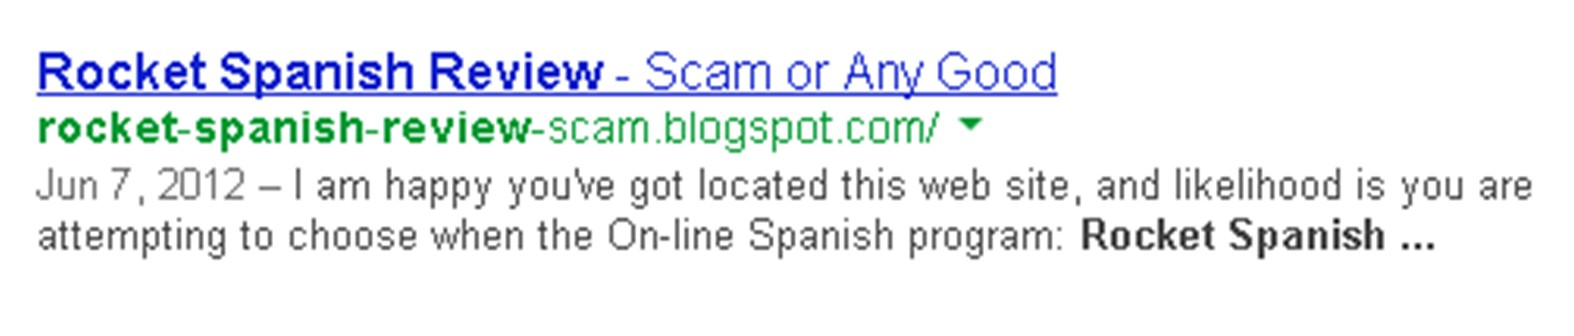 Rocket Spanish Scam Example